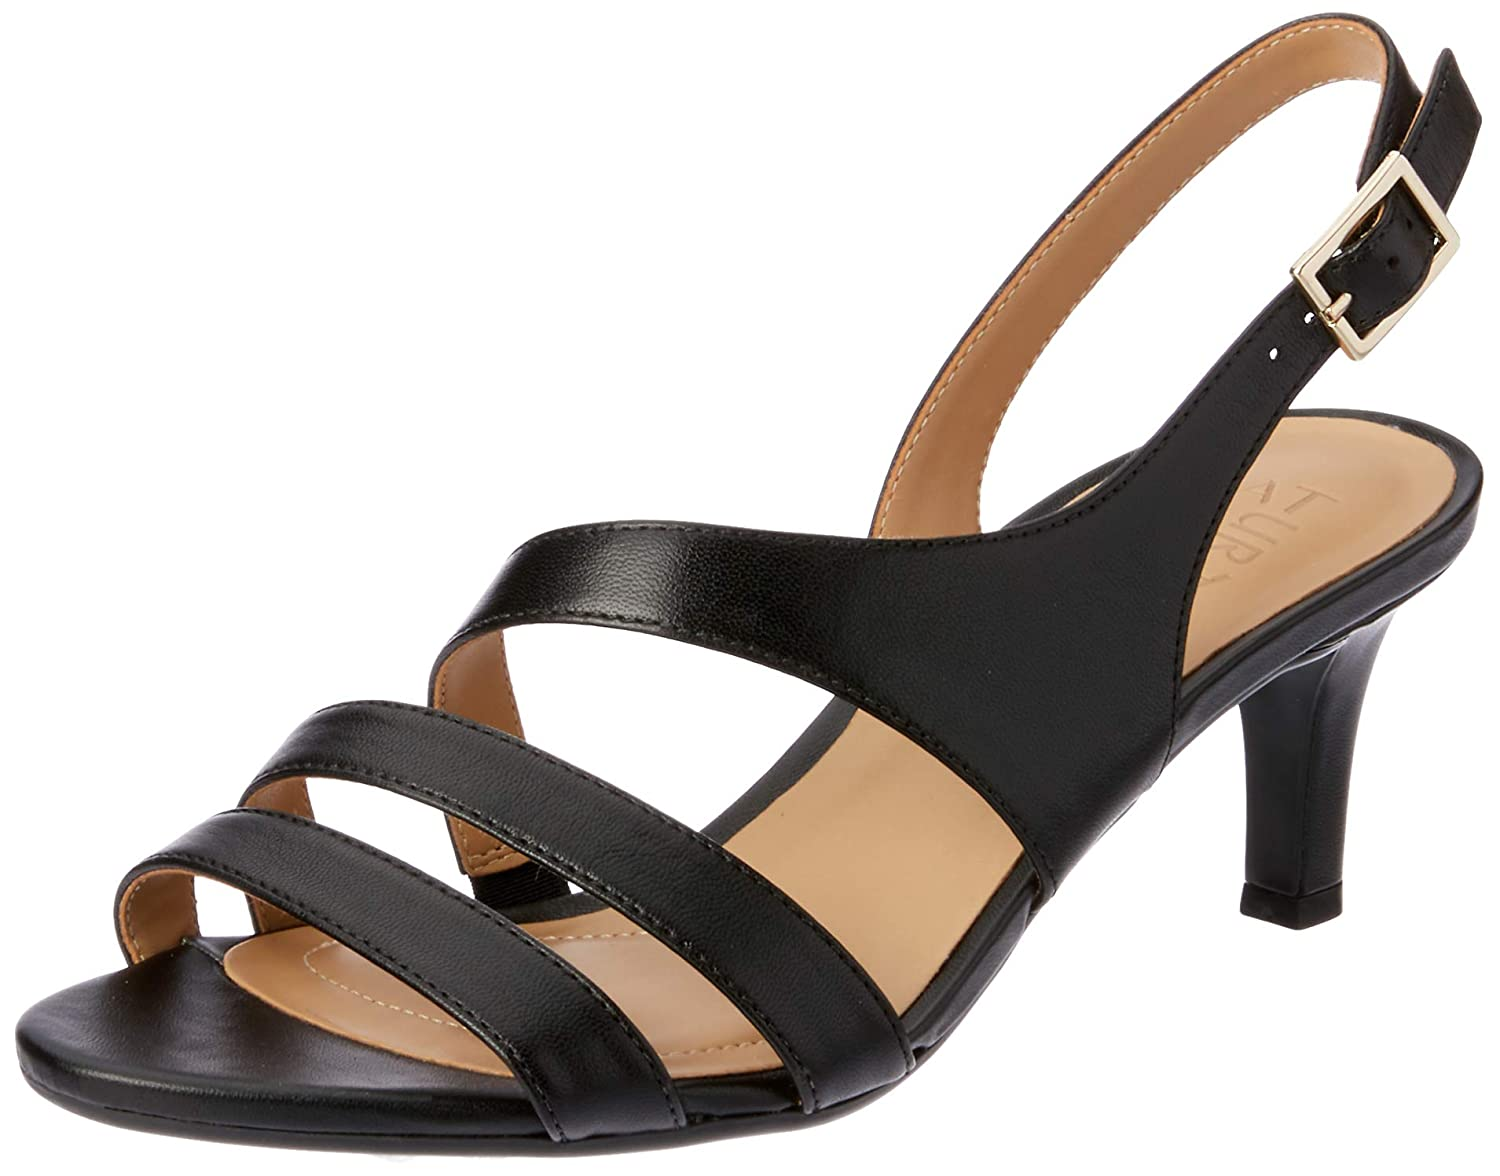 Black Leather Naturalizer Women's Taimi Dress Sandal